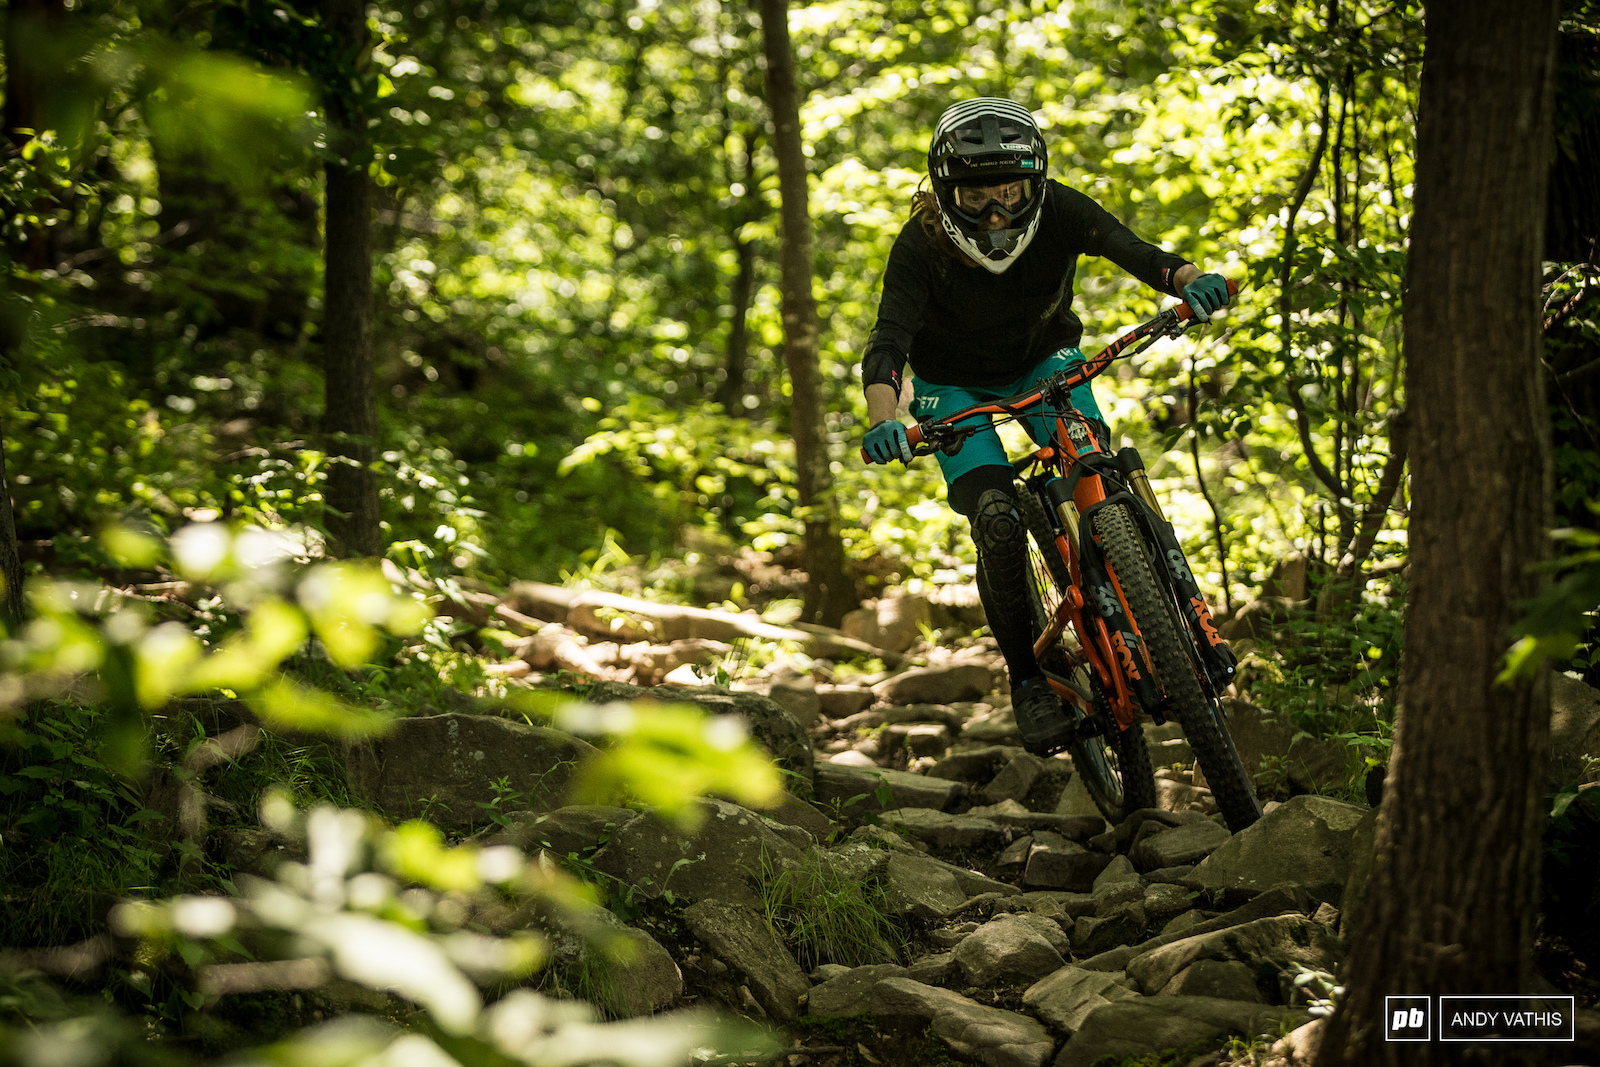 Laura Slavin on The Jack a mellow rocky trail.